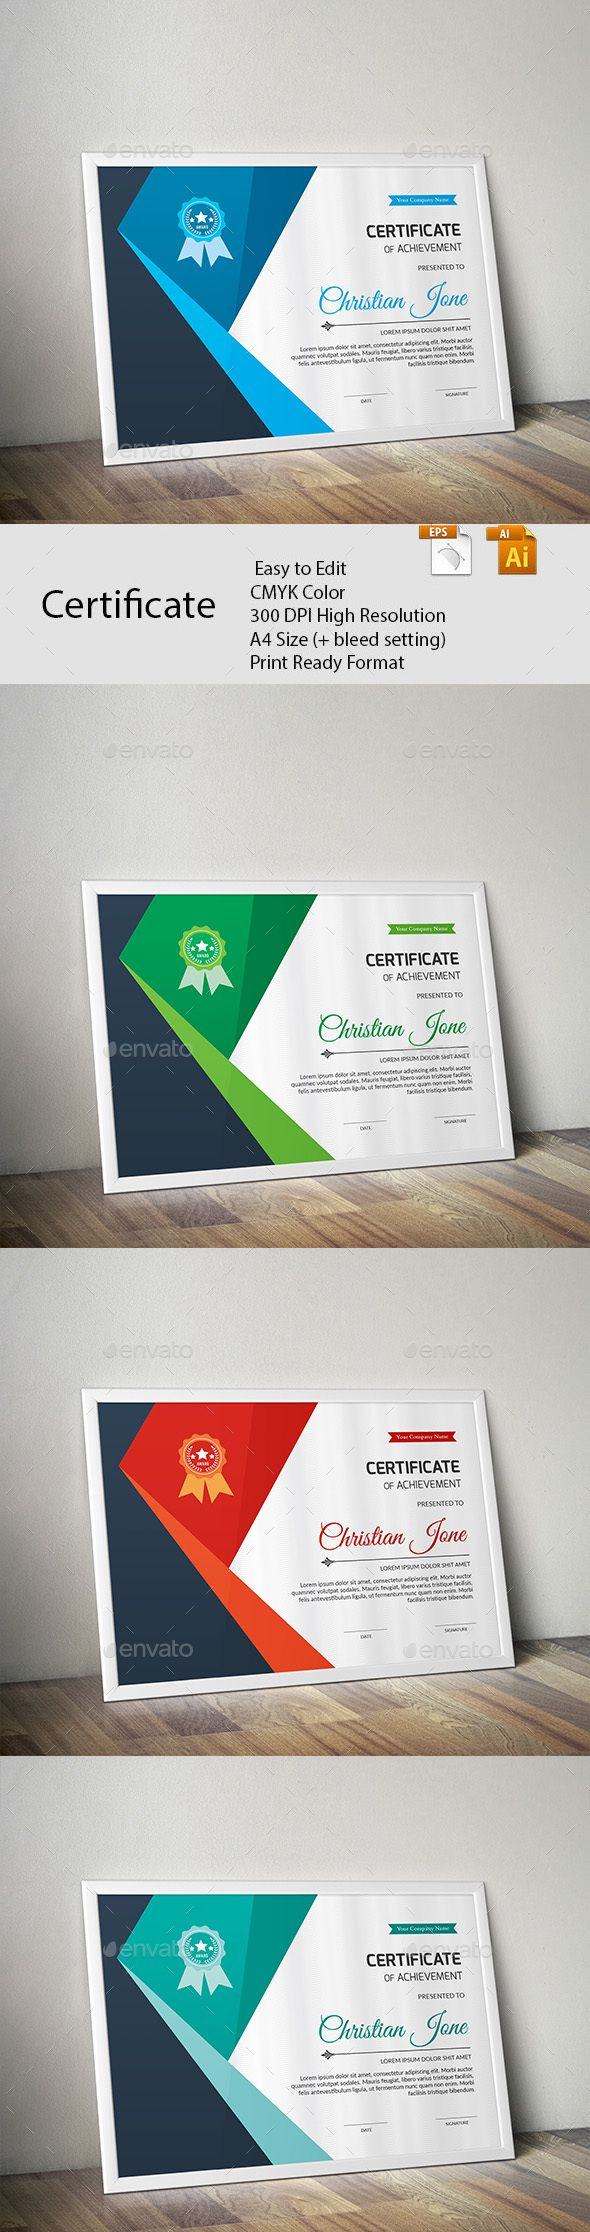 Certificate A GREAT CREATIVE CERTIFICATE TEMPLATE FOR CREATIVE PERSON. FEATURES:      Easy to Edit     CMYK Color     300 DPI High Resolution     A4 Size (+ bleed setting)     Print Ready Format     Free Fonts      FILES INCLUDES:     8 Ai & EPS files     read me.pdf      FONTS USED: